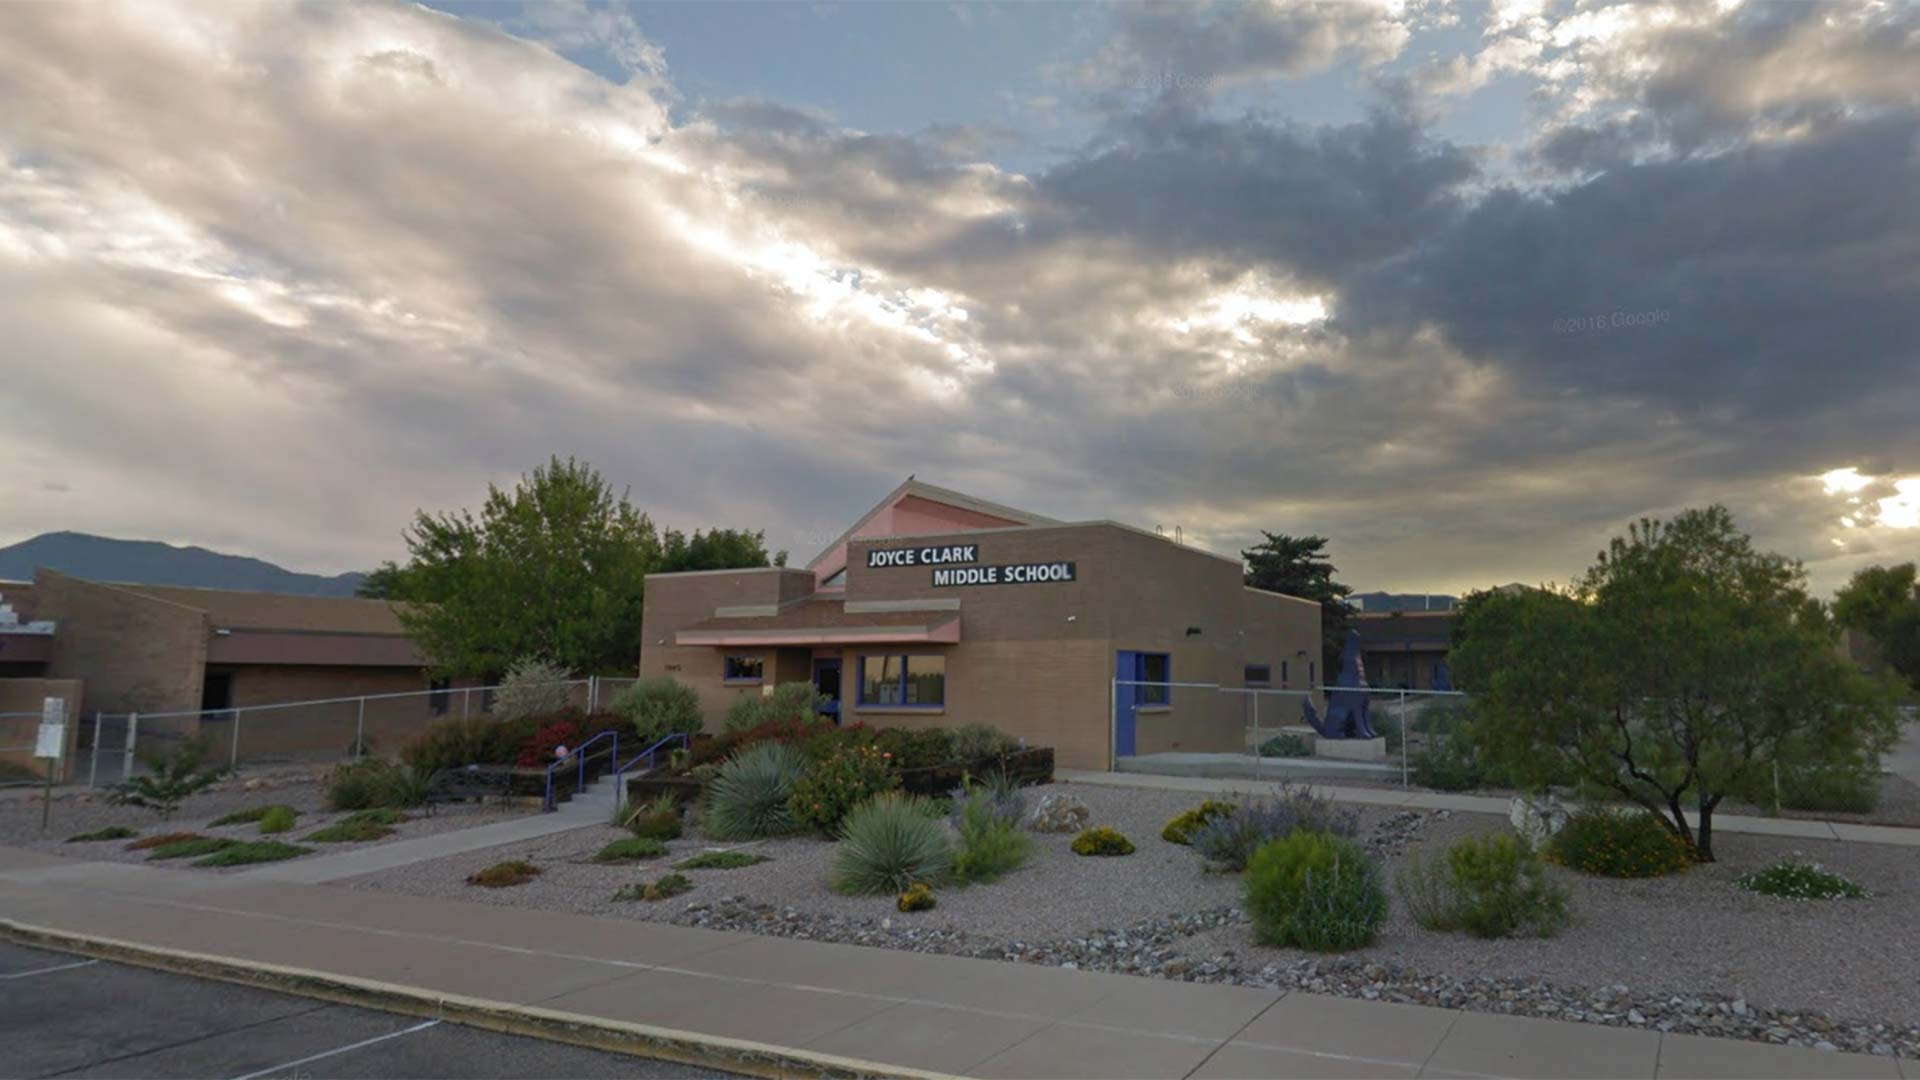 A Google Street View image of Joyce Clark Middle School in Sierra Vista.